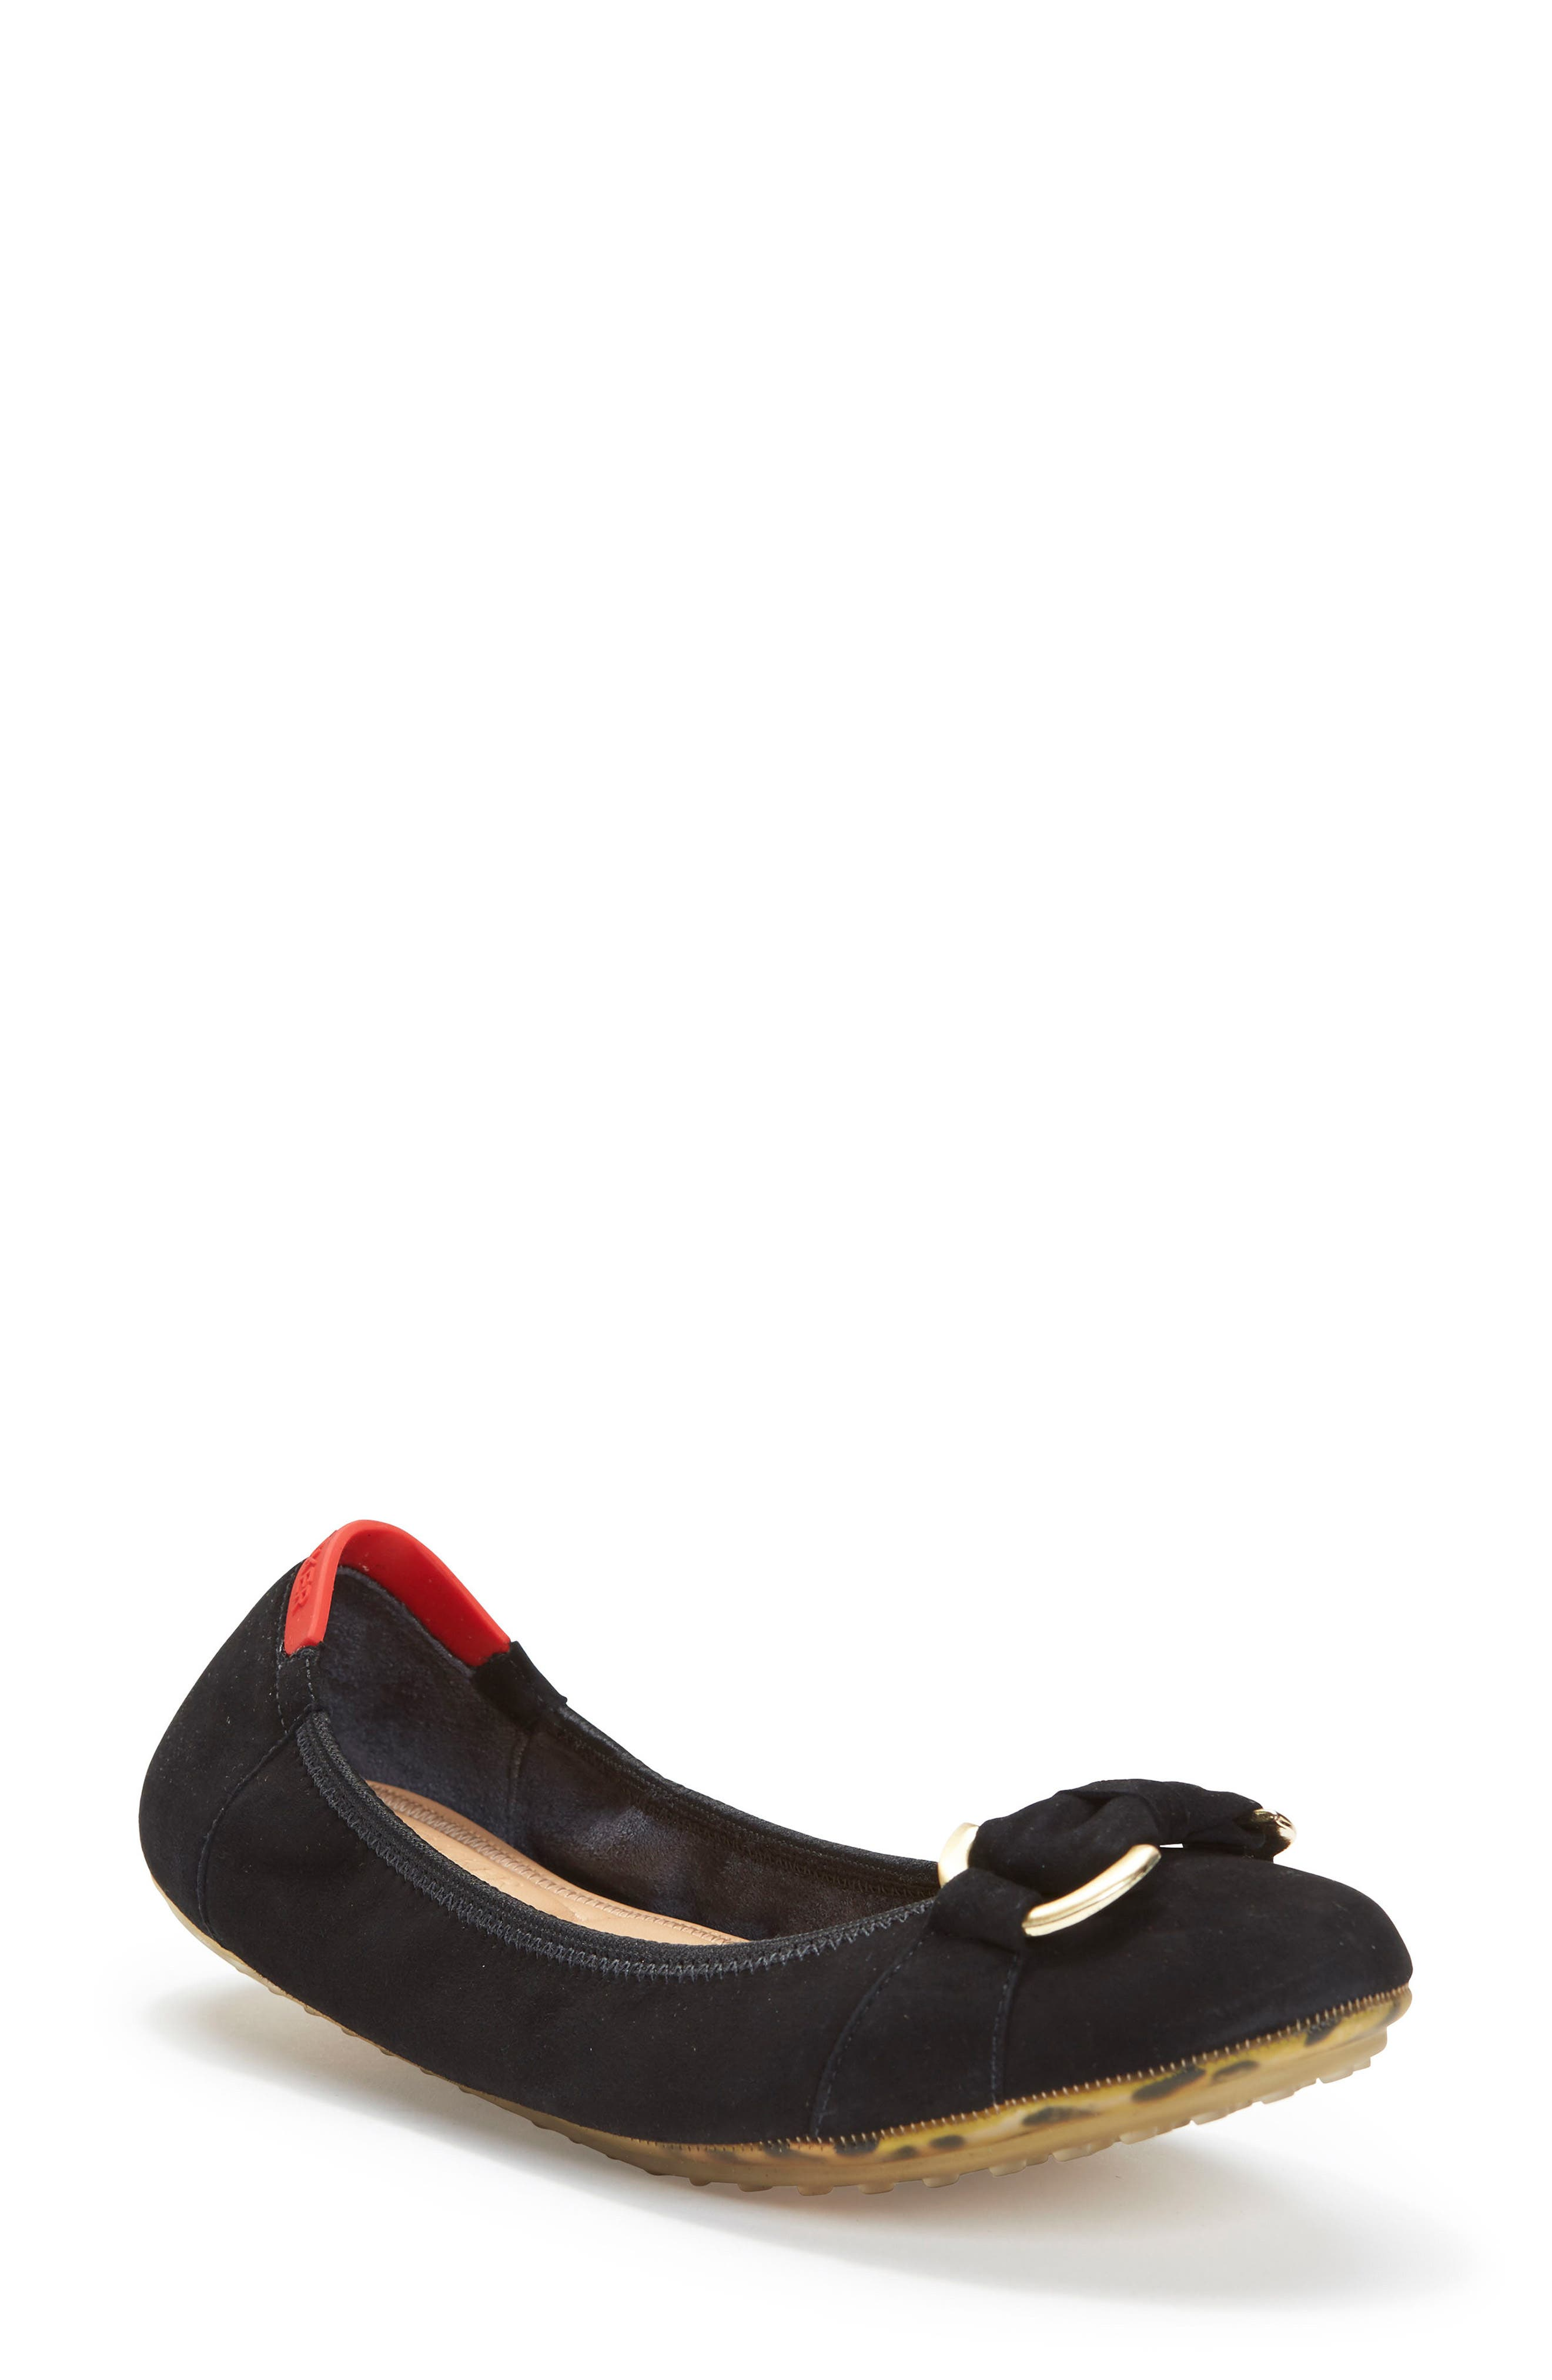 Kelly Flat,                             Main thumbnail 1, color,                             Black Suede